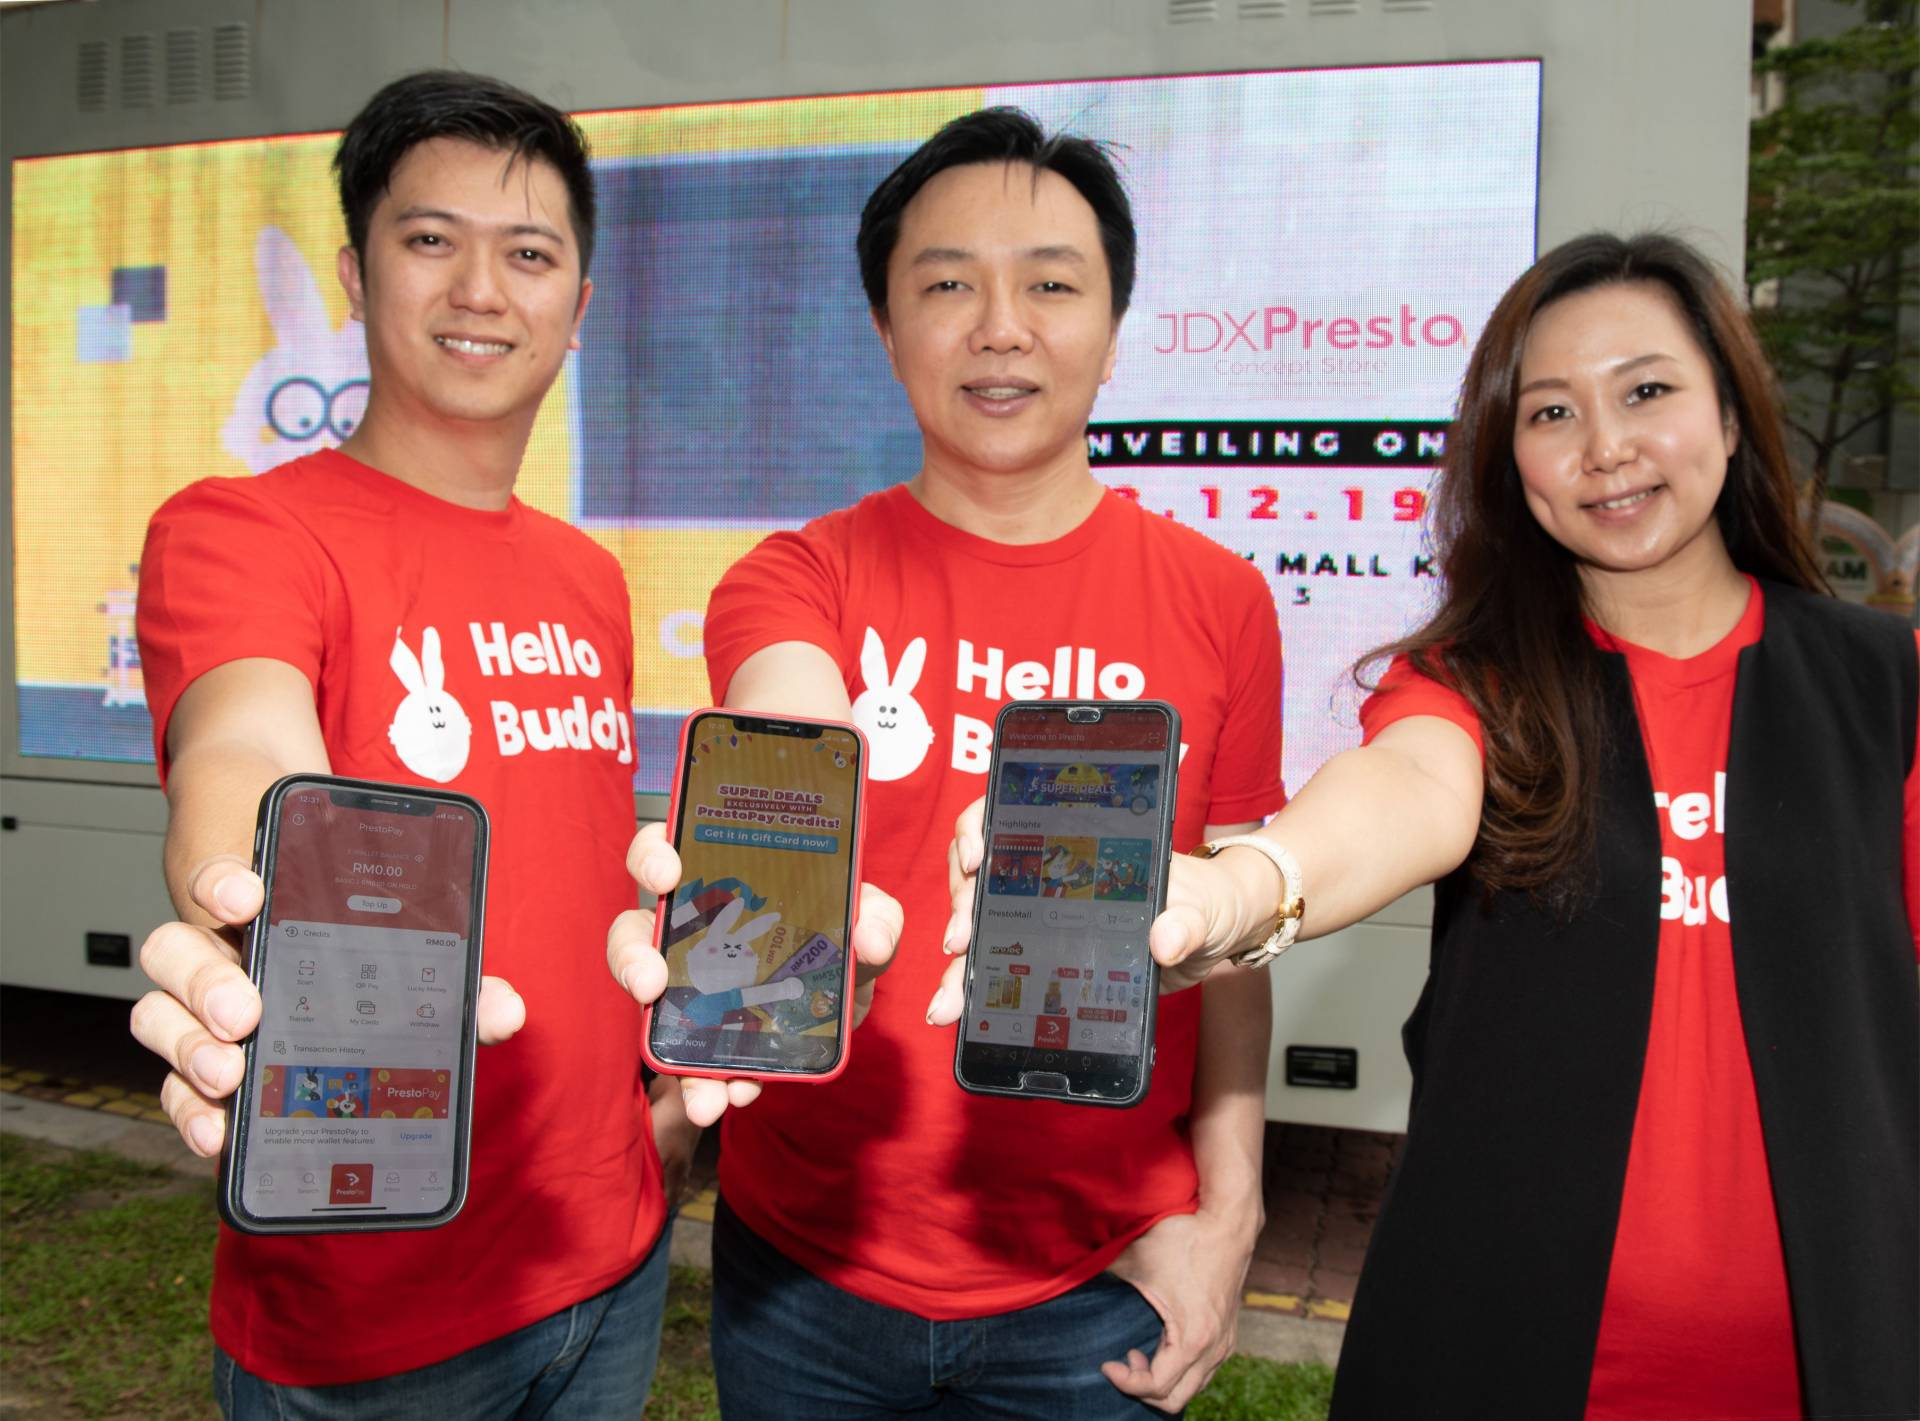 (From left) Smuzcity founder Kent Lee, PUC Berhad Group chief executive officer Cheong Chia Chou, Smuzcity chief operating officer Tai Yhee Phei during the JDX Presto Concept Store Roadshow.